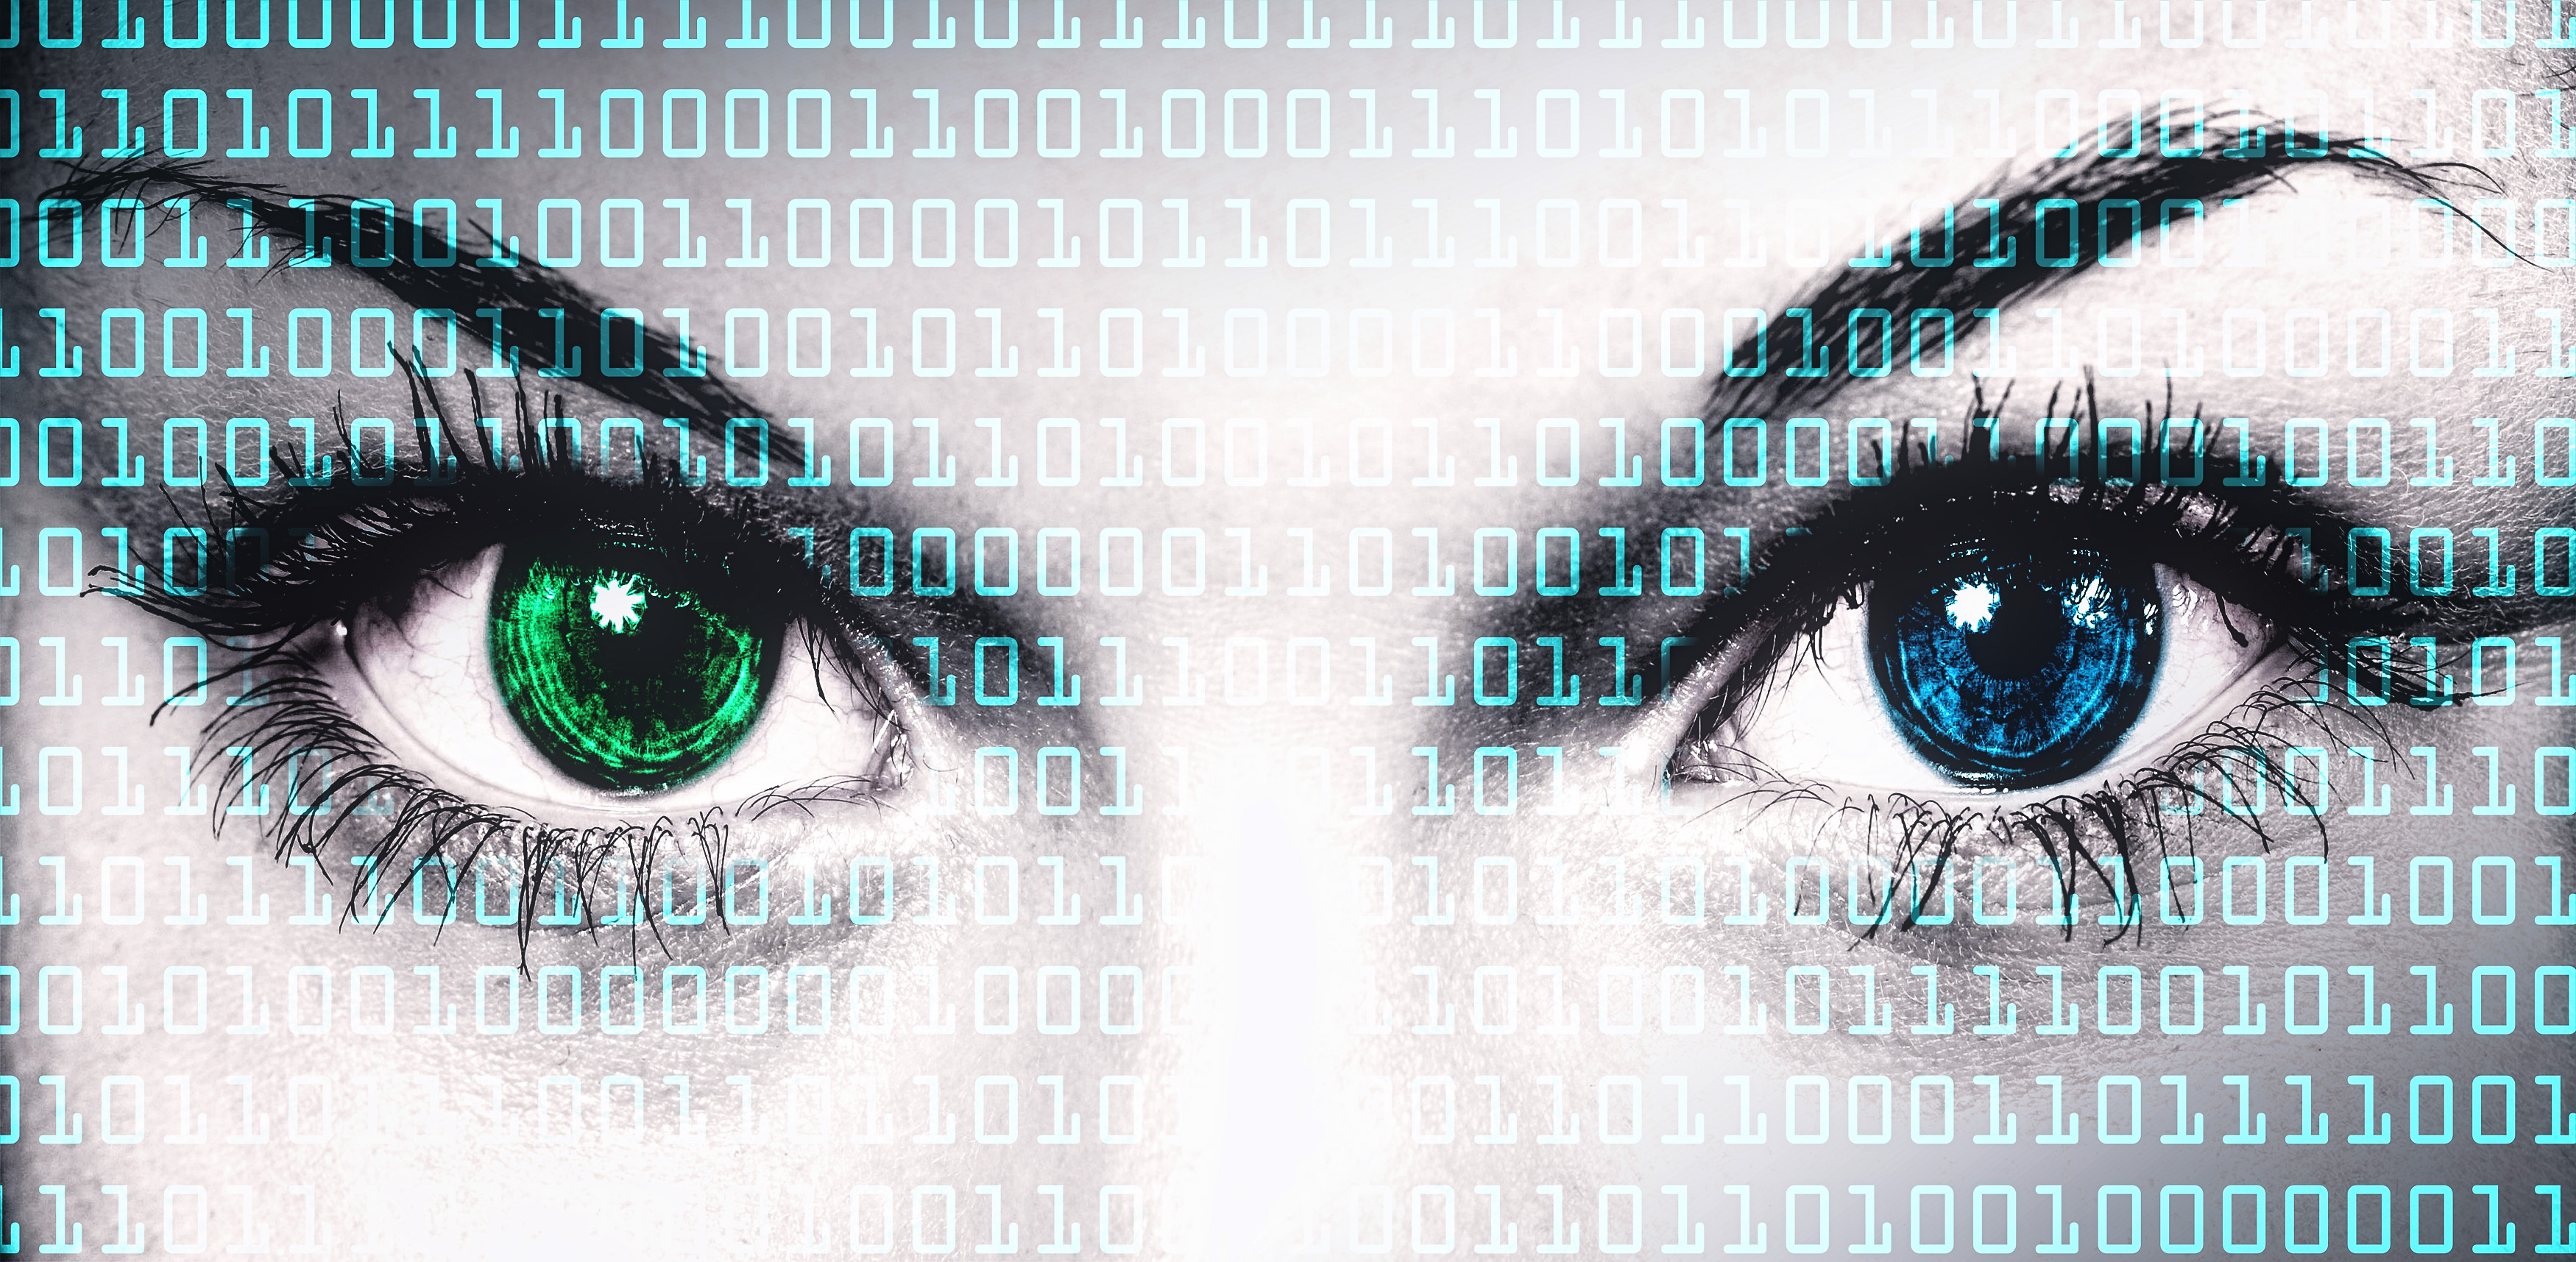 Binary computer code on human face - online privacy concept photo